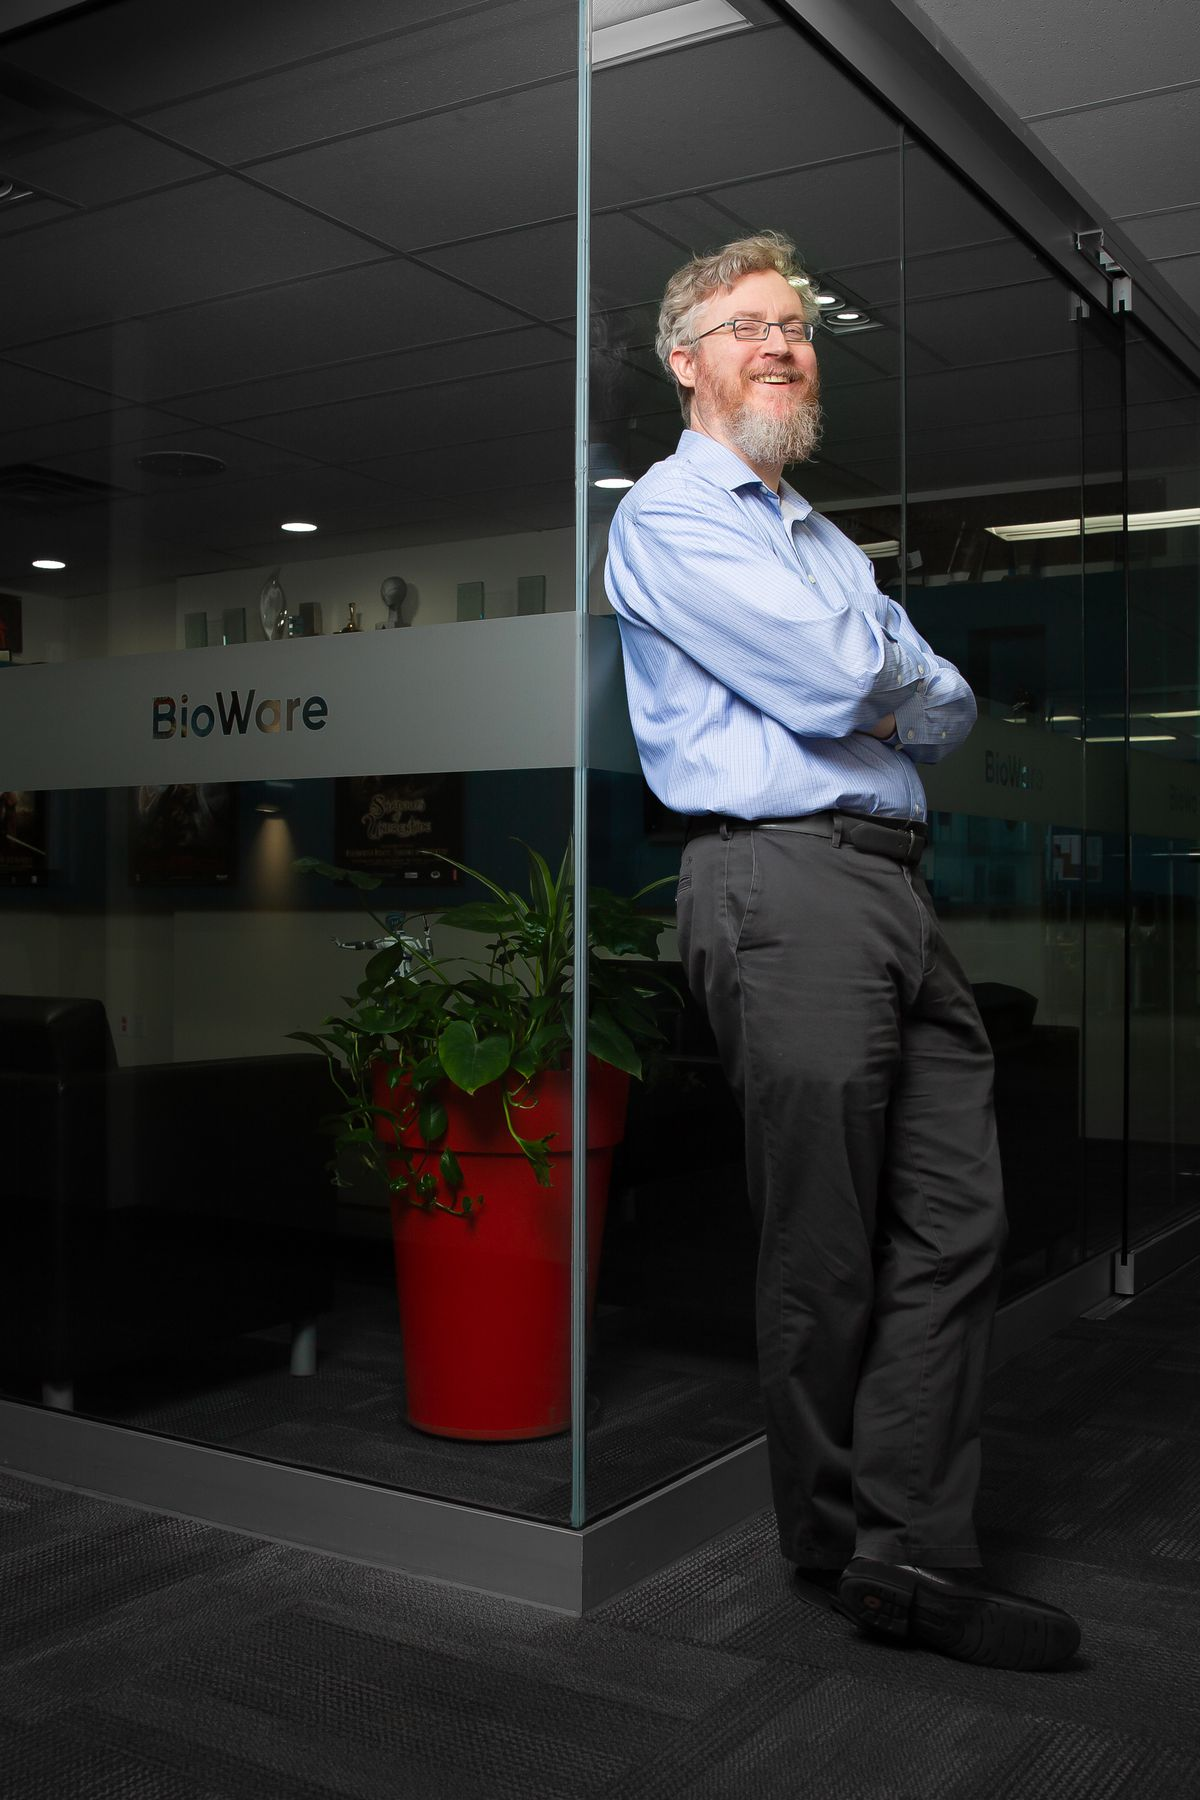 photo of BioWare's Mark Darrah